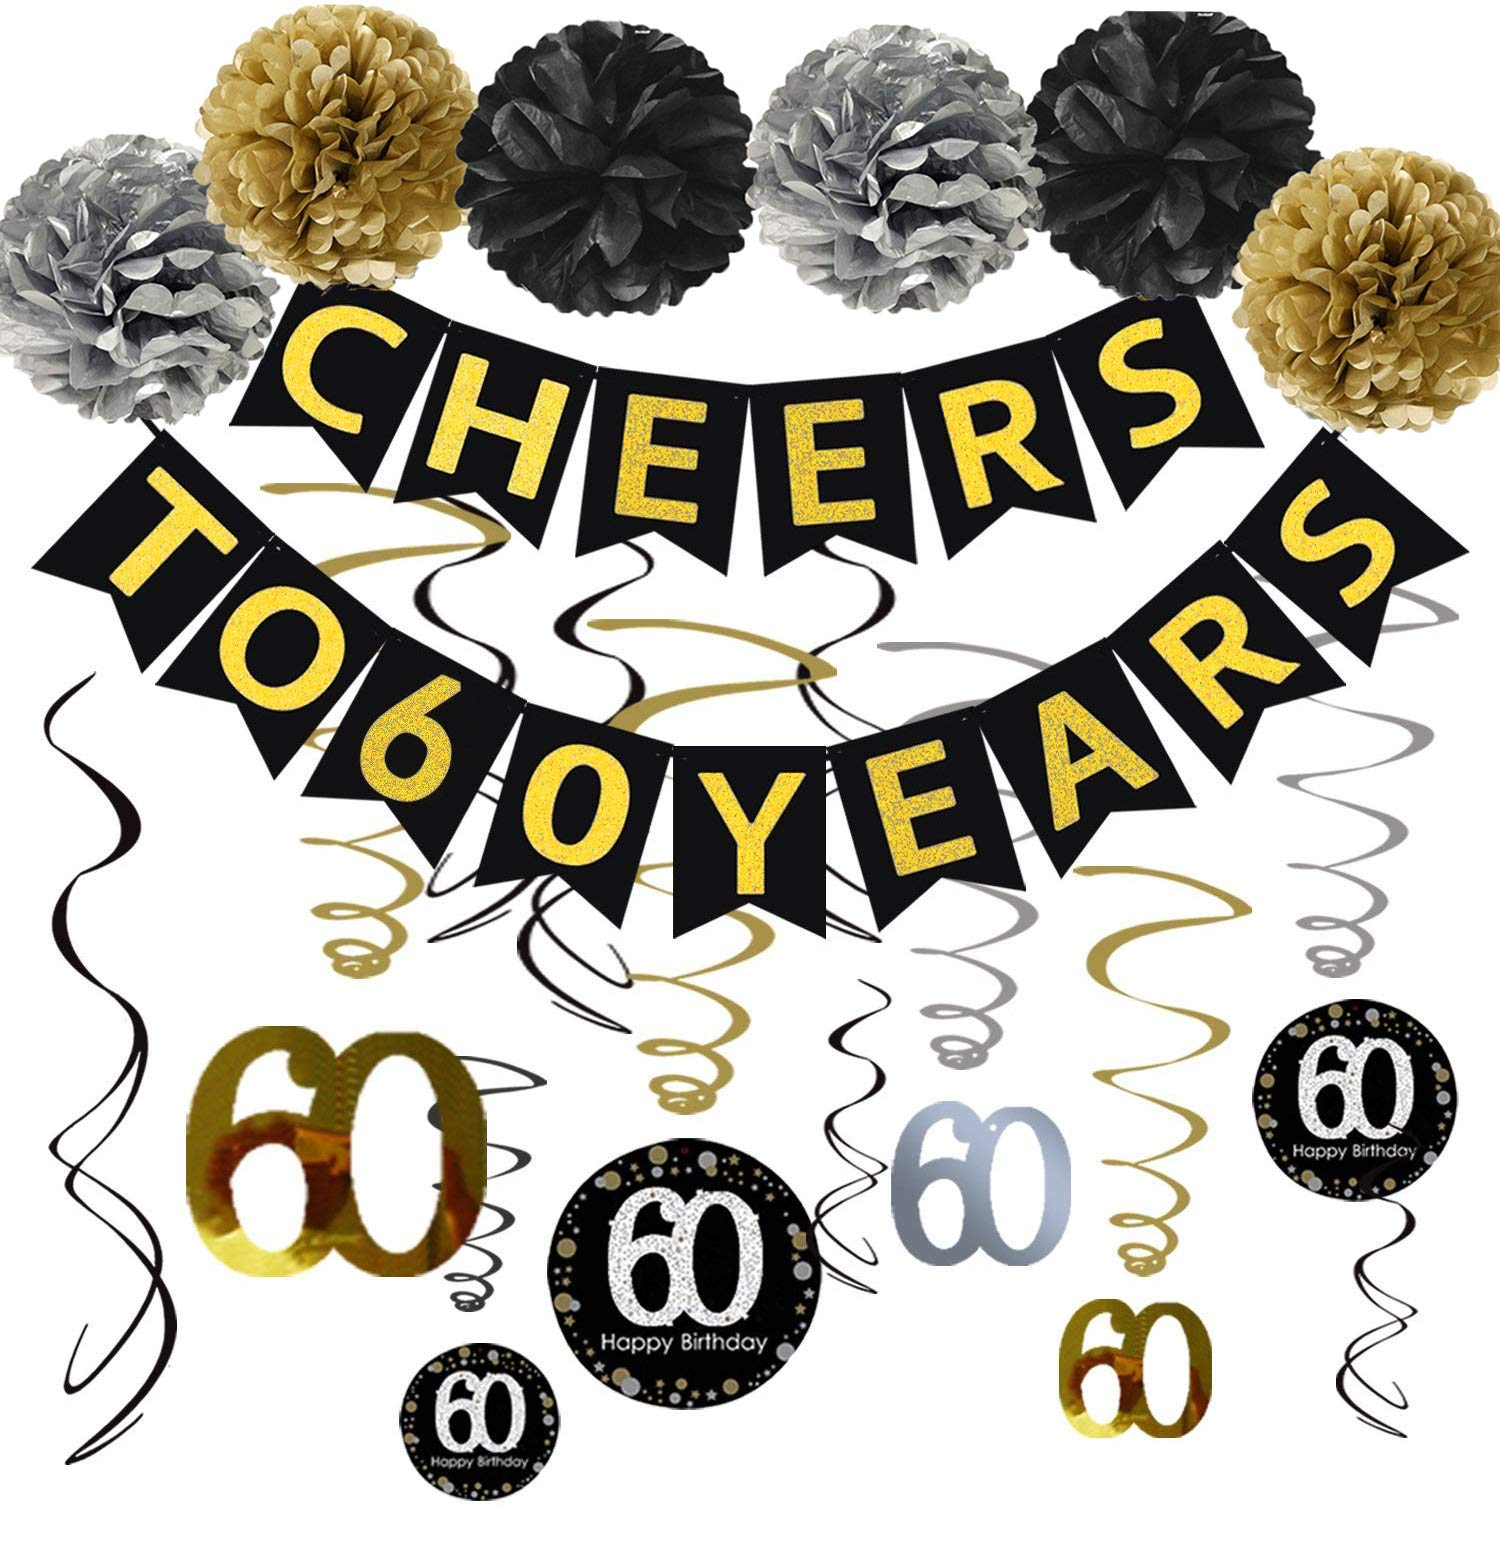 60th Birthday Party Decorations KIT - Cheers to 60 Years Banner, Sparkling Celebration 60 Hanging Swirls, Poms, Perfect 60 Years Old Party Supplies 60th Anniversary Decorations by Famoby